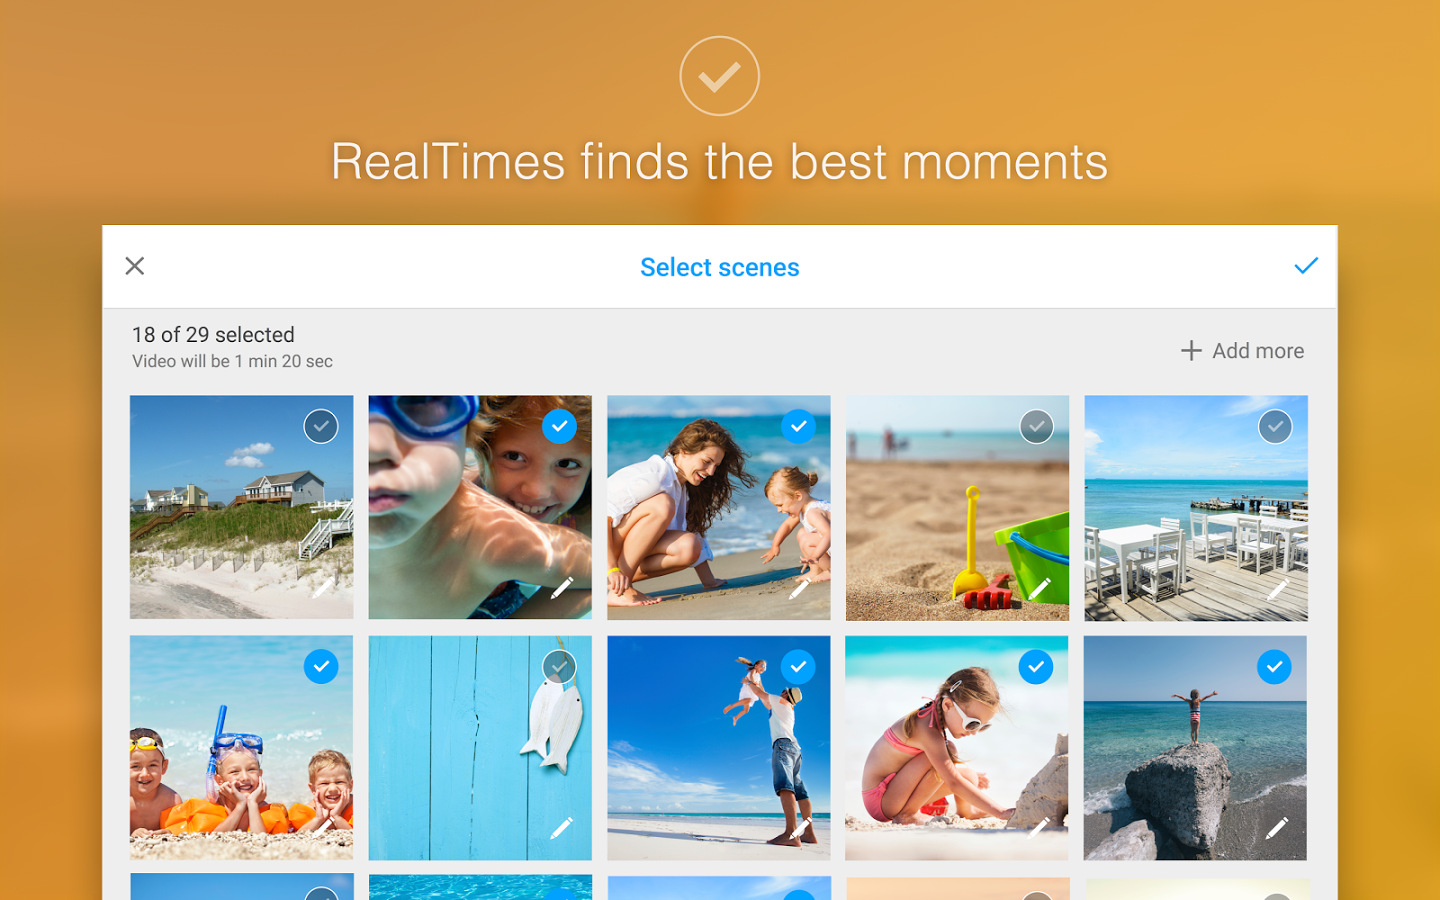 RealTimes is the latest RealPlayer with integrated cloud services and much more. Now it's very easy to store, share (privately or public) and watch videos on any device.